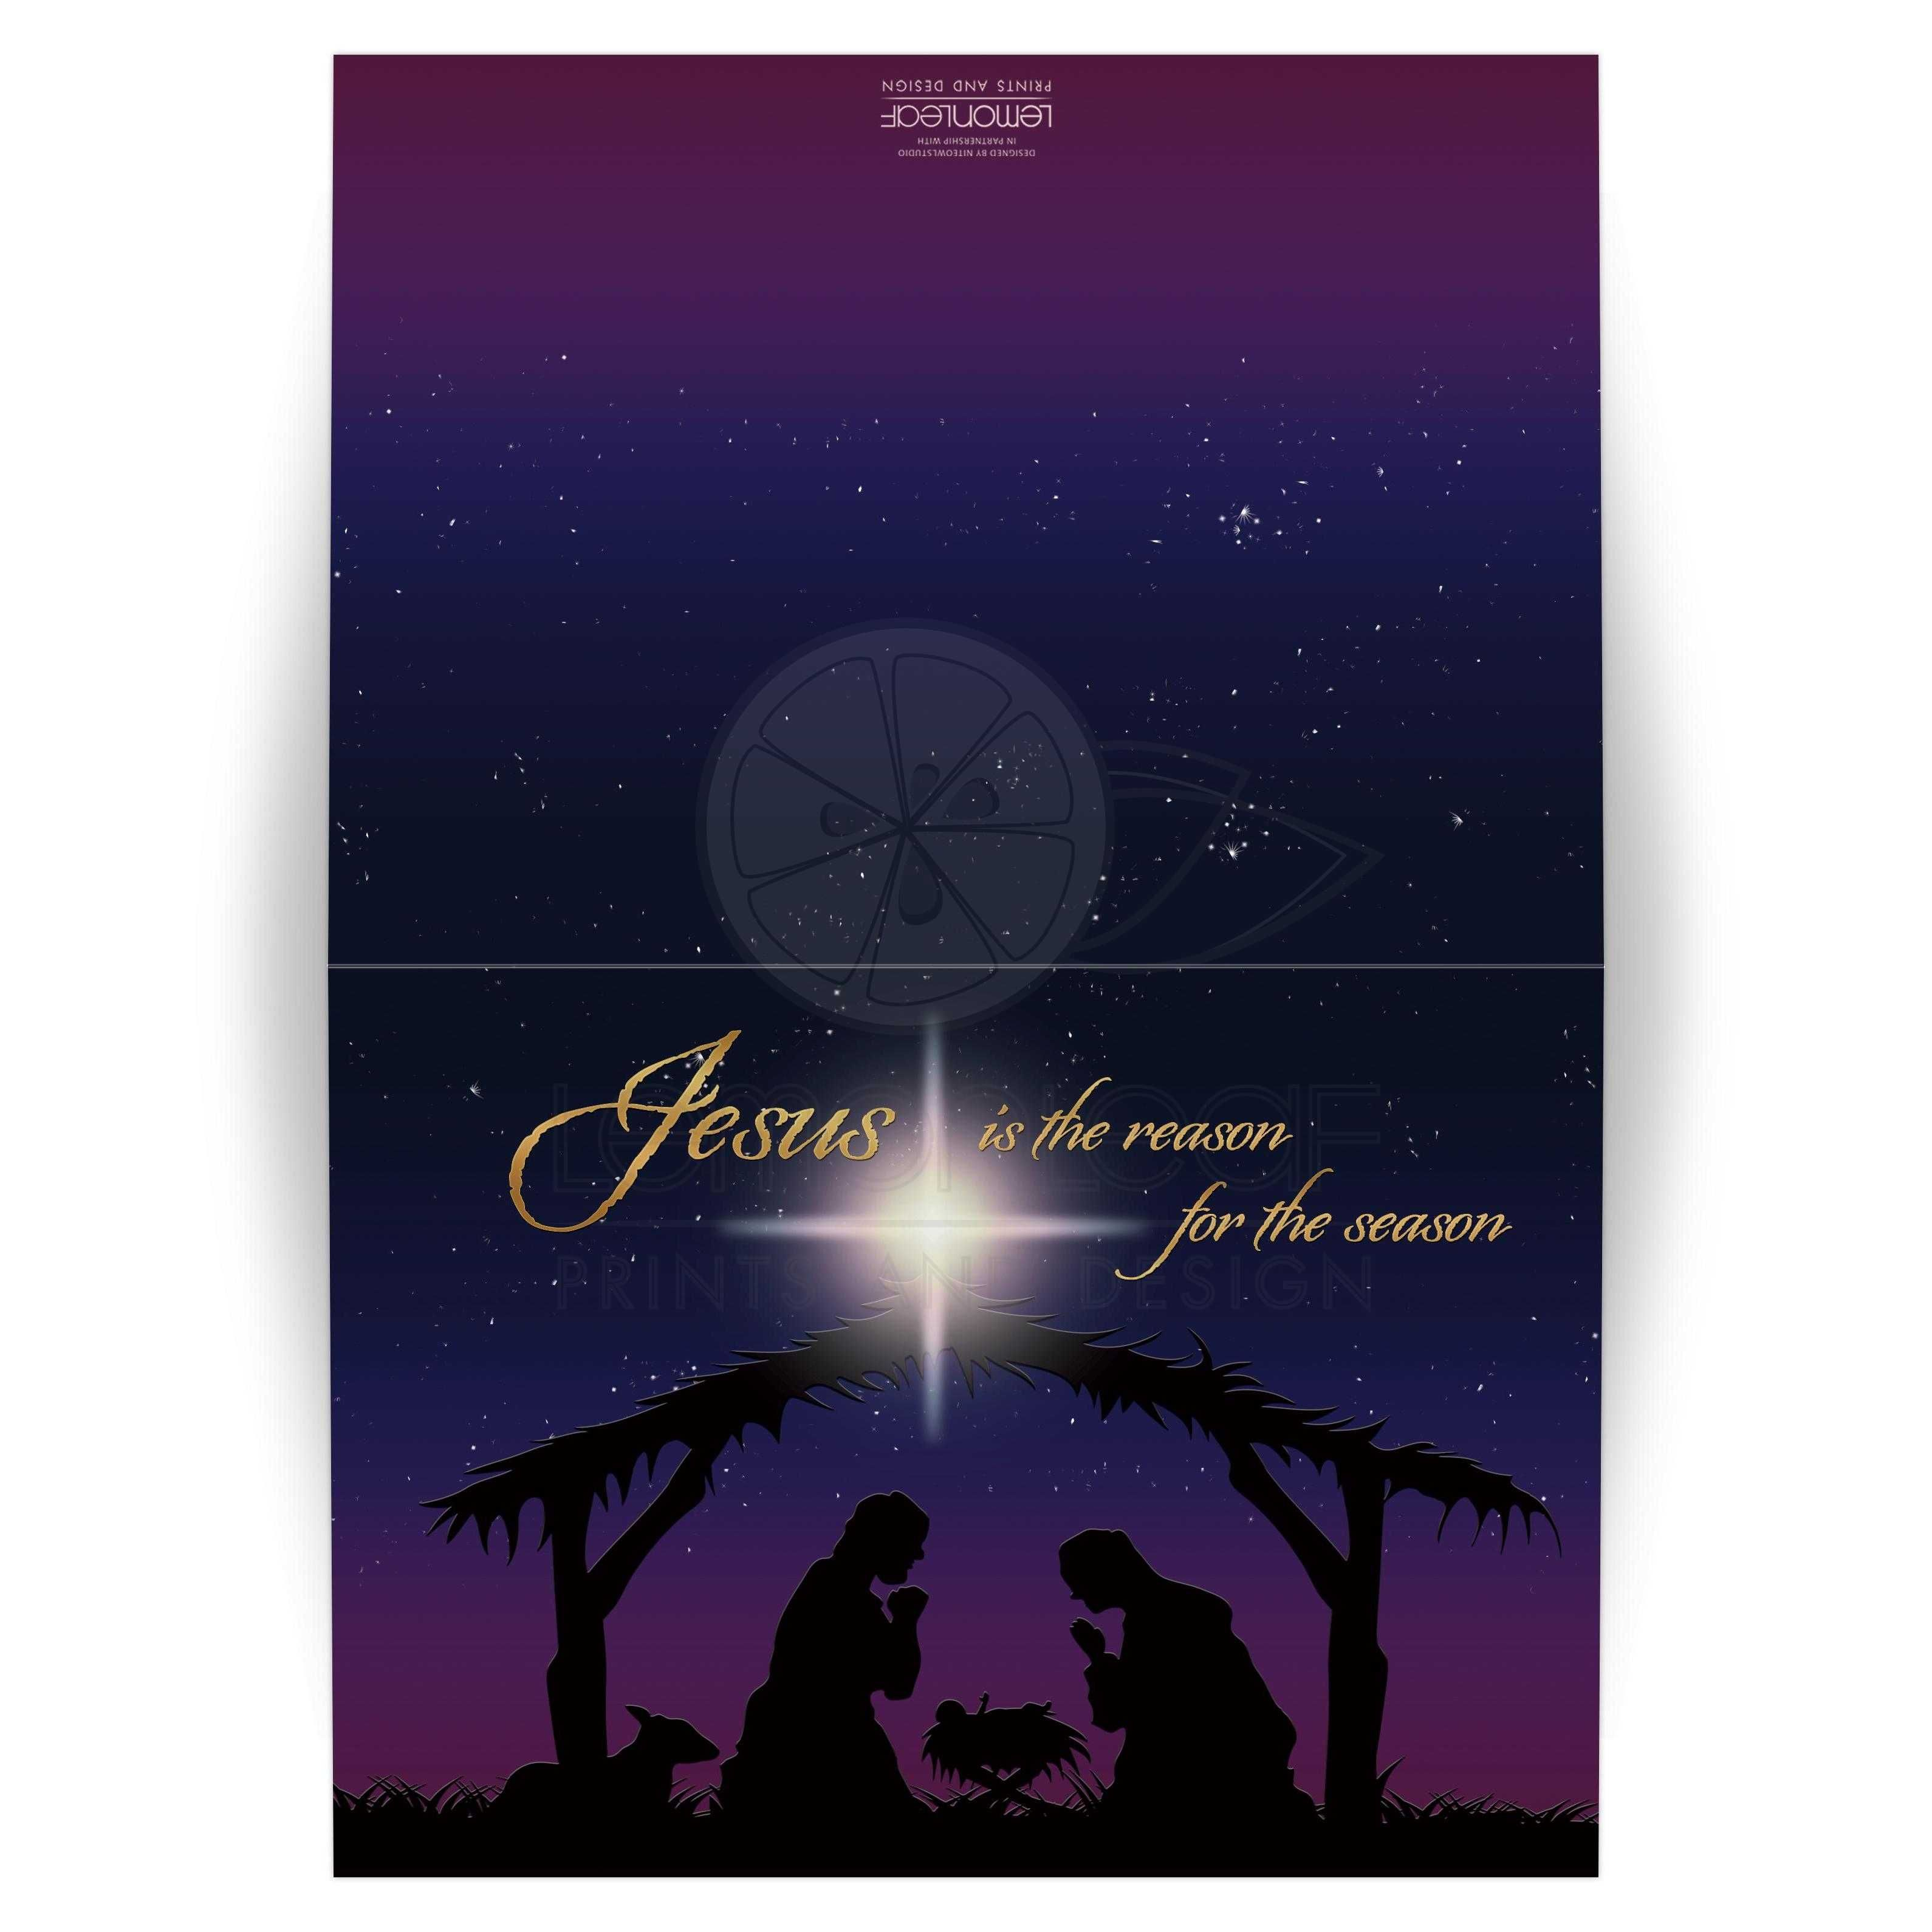 Best personalized photo template Holy night Nativity scene Christmas card with Star of Bethlehem and Jesus is the reason for the season in gold.